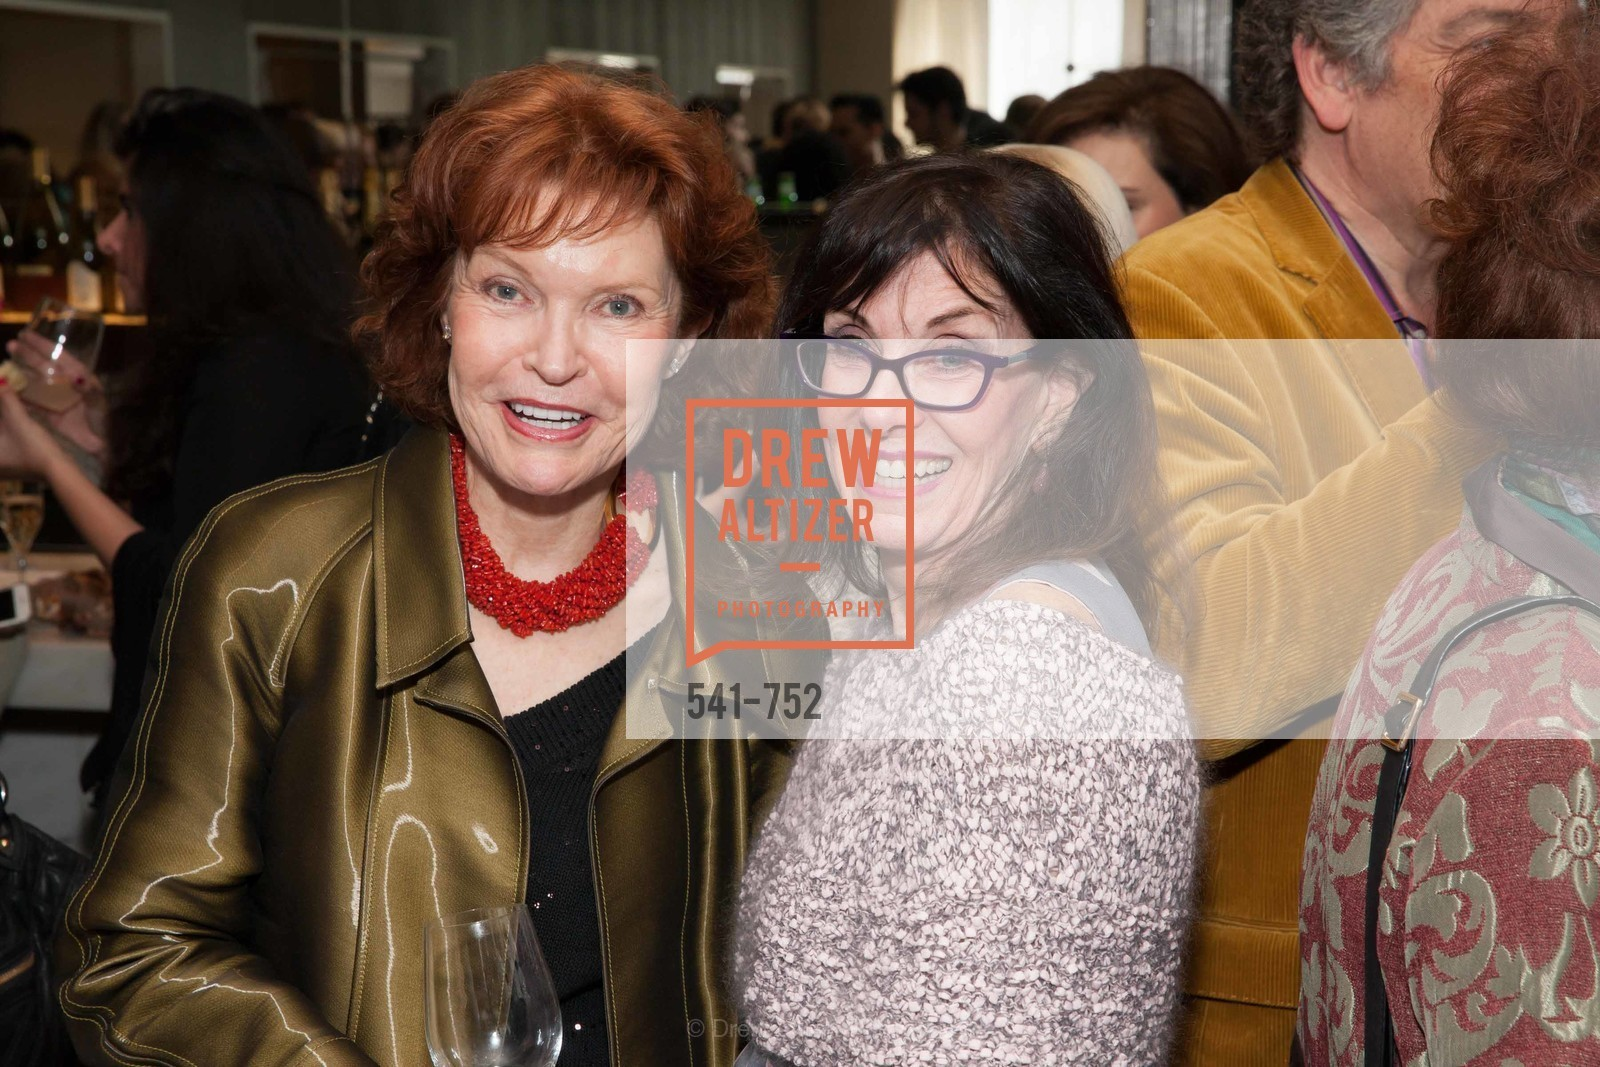 Marilyn Hayes, Jill Barnett, Electric Fashion Book Signing with Christine Suppes & Ken Downing at THE ROTUNDA, NEIMAN MARCUS, US, May 27th, 2015,Drew Altizer, Drew Altizer Photography, full-service agency, private events, San Francisco photographer, photographer california